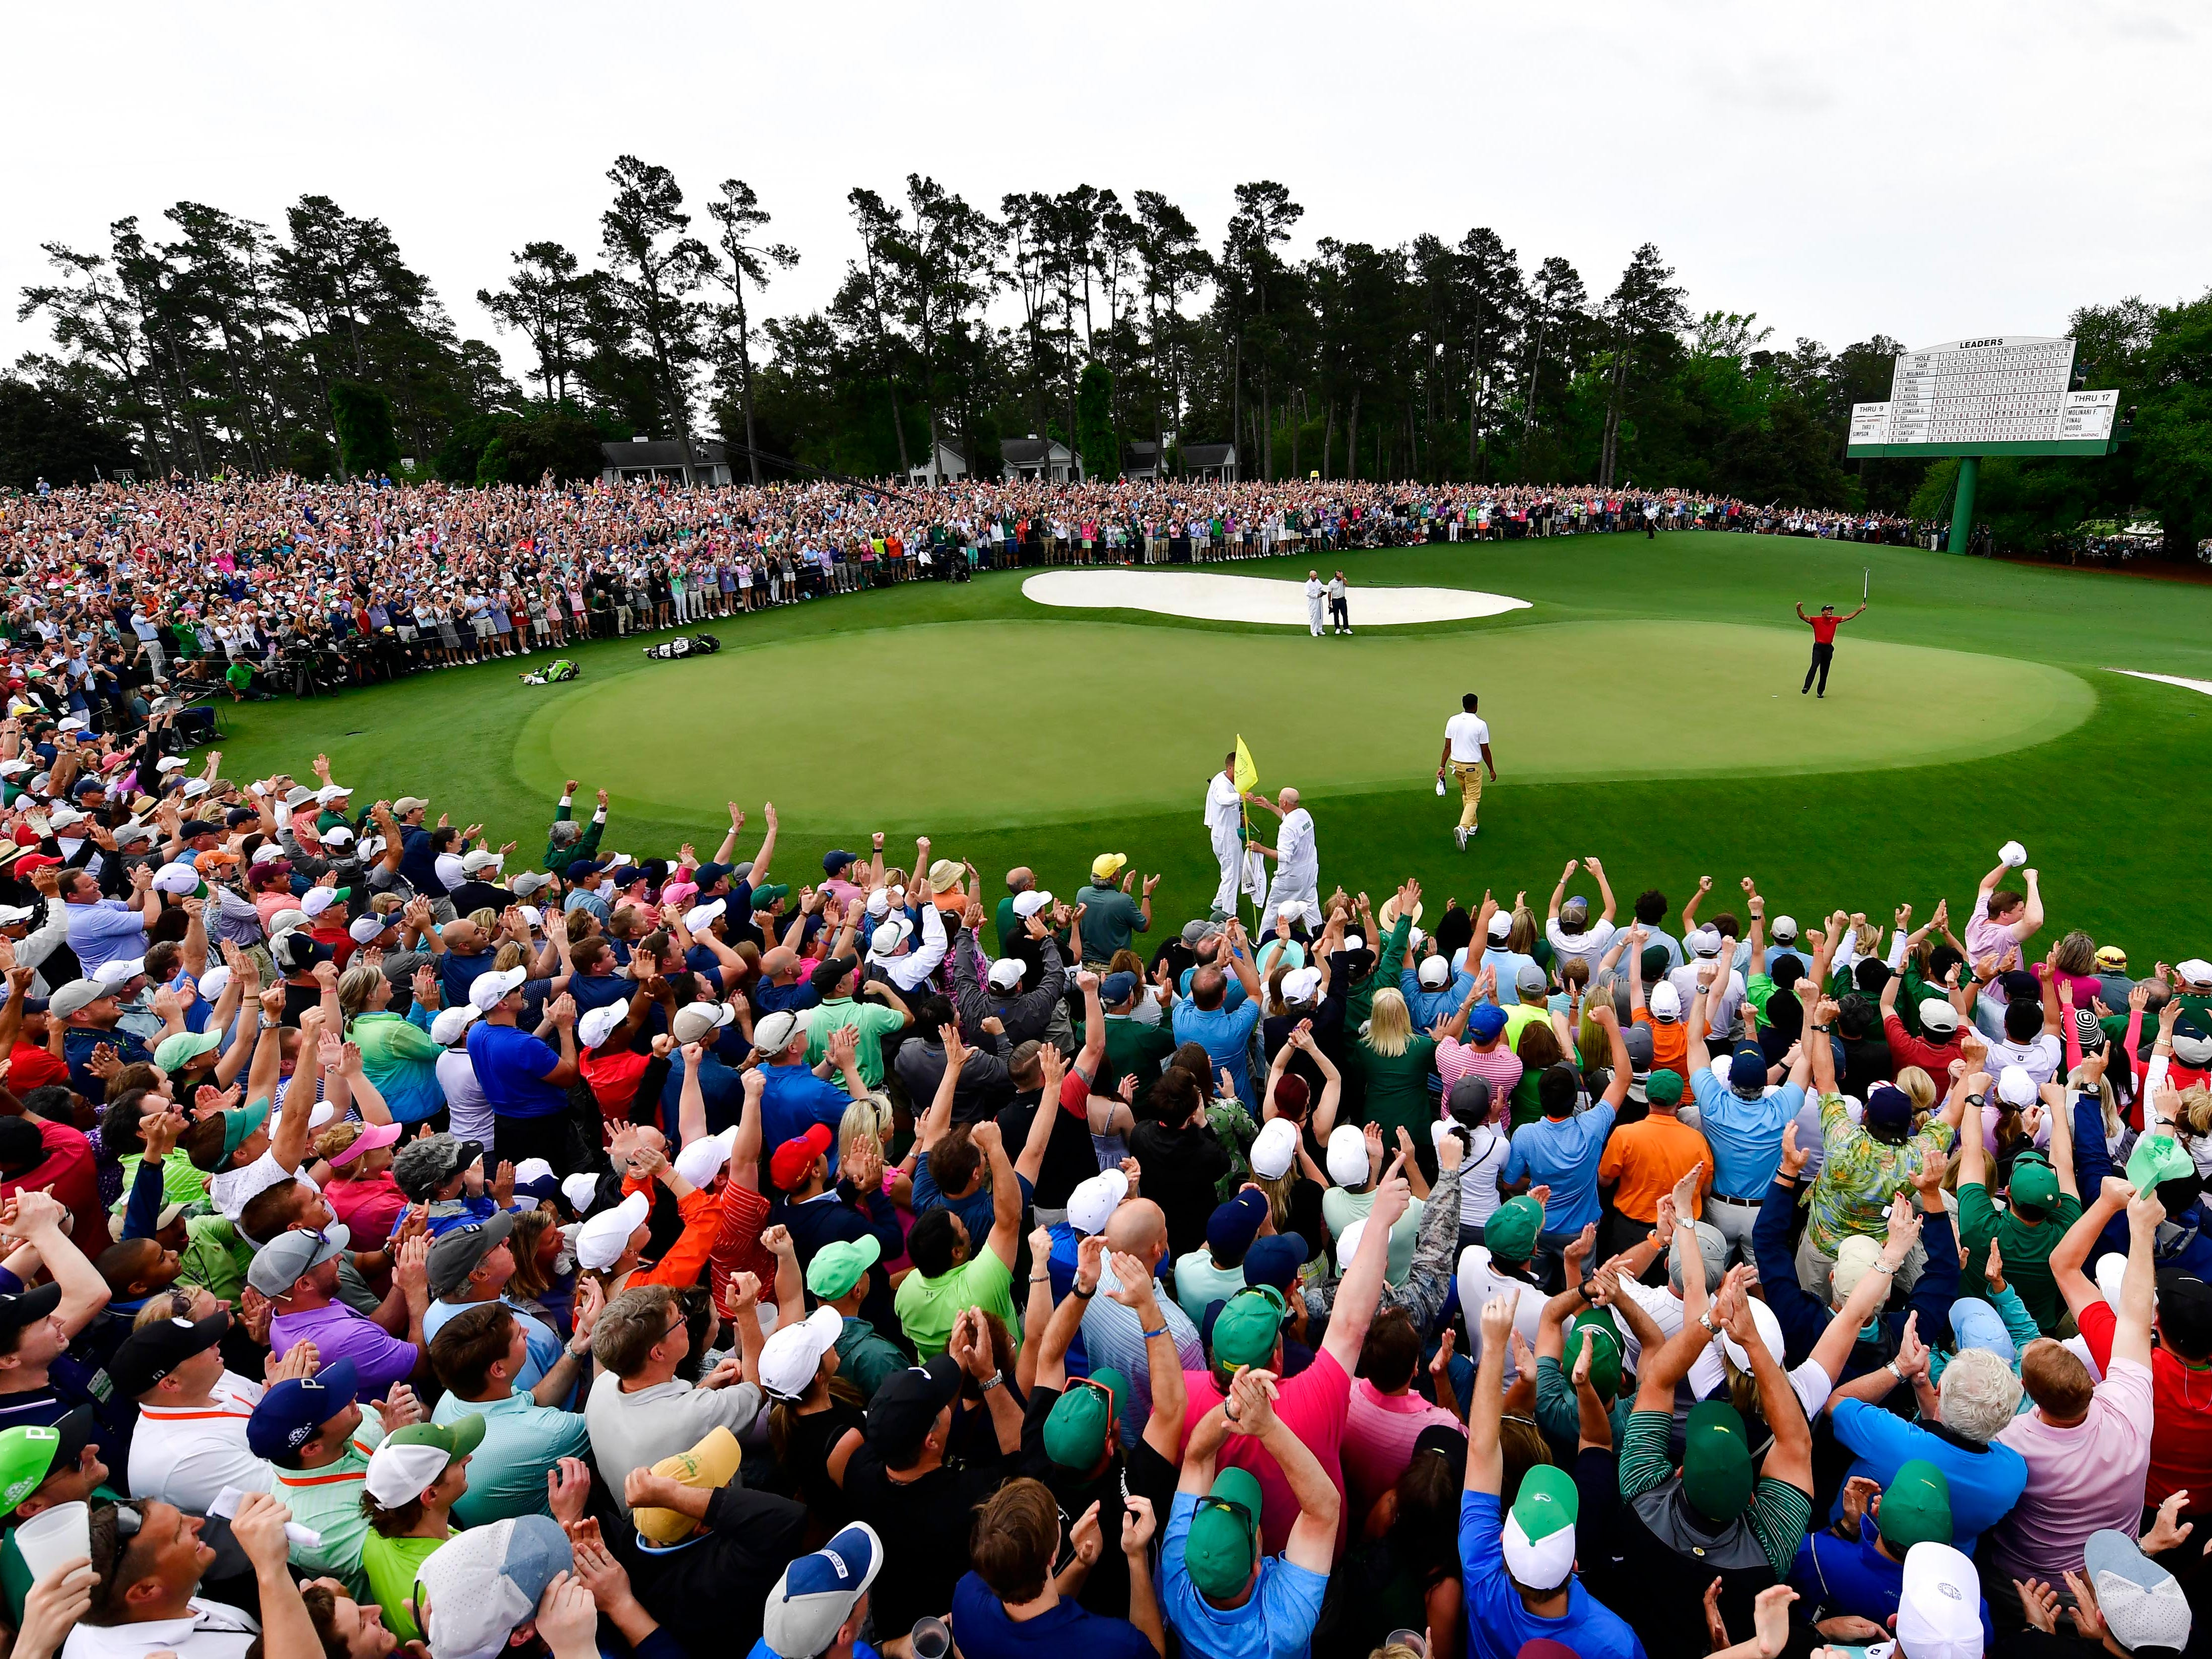 A large crowd gathered to watch Tiger Woods celebrate his win at The Masters.